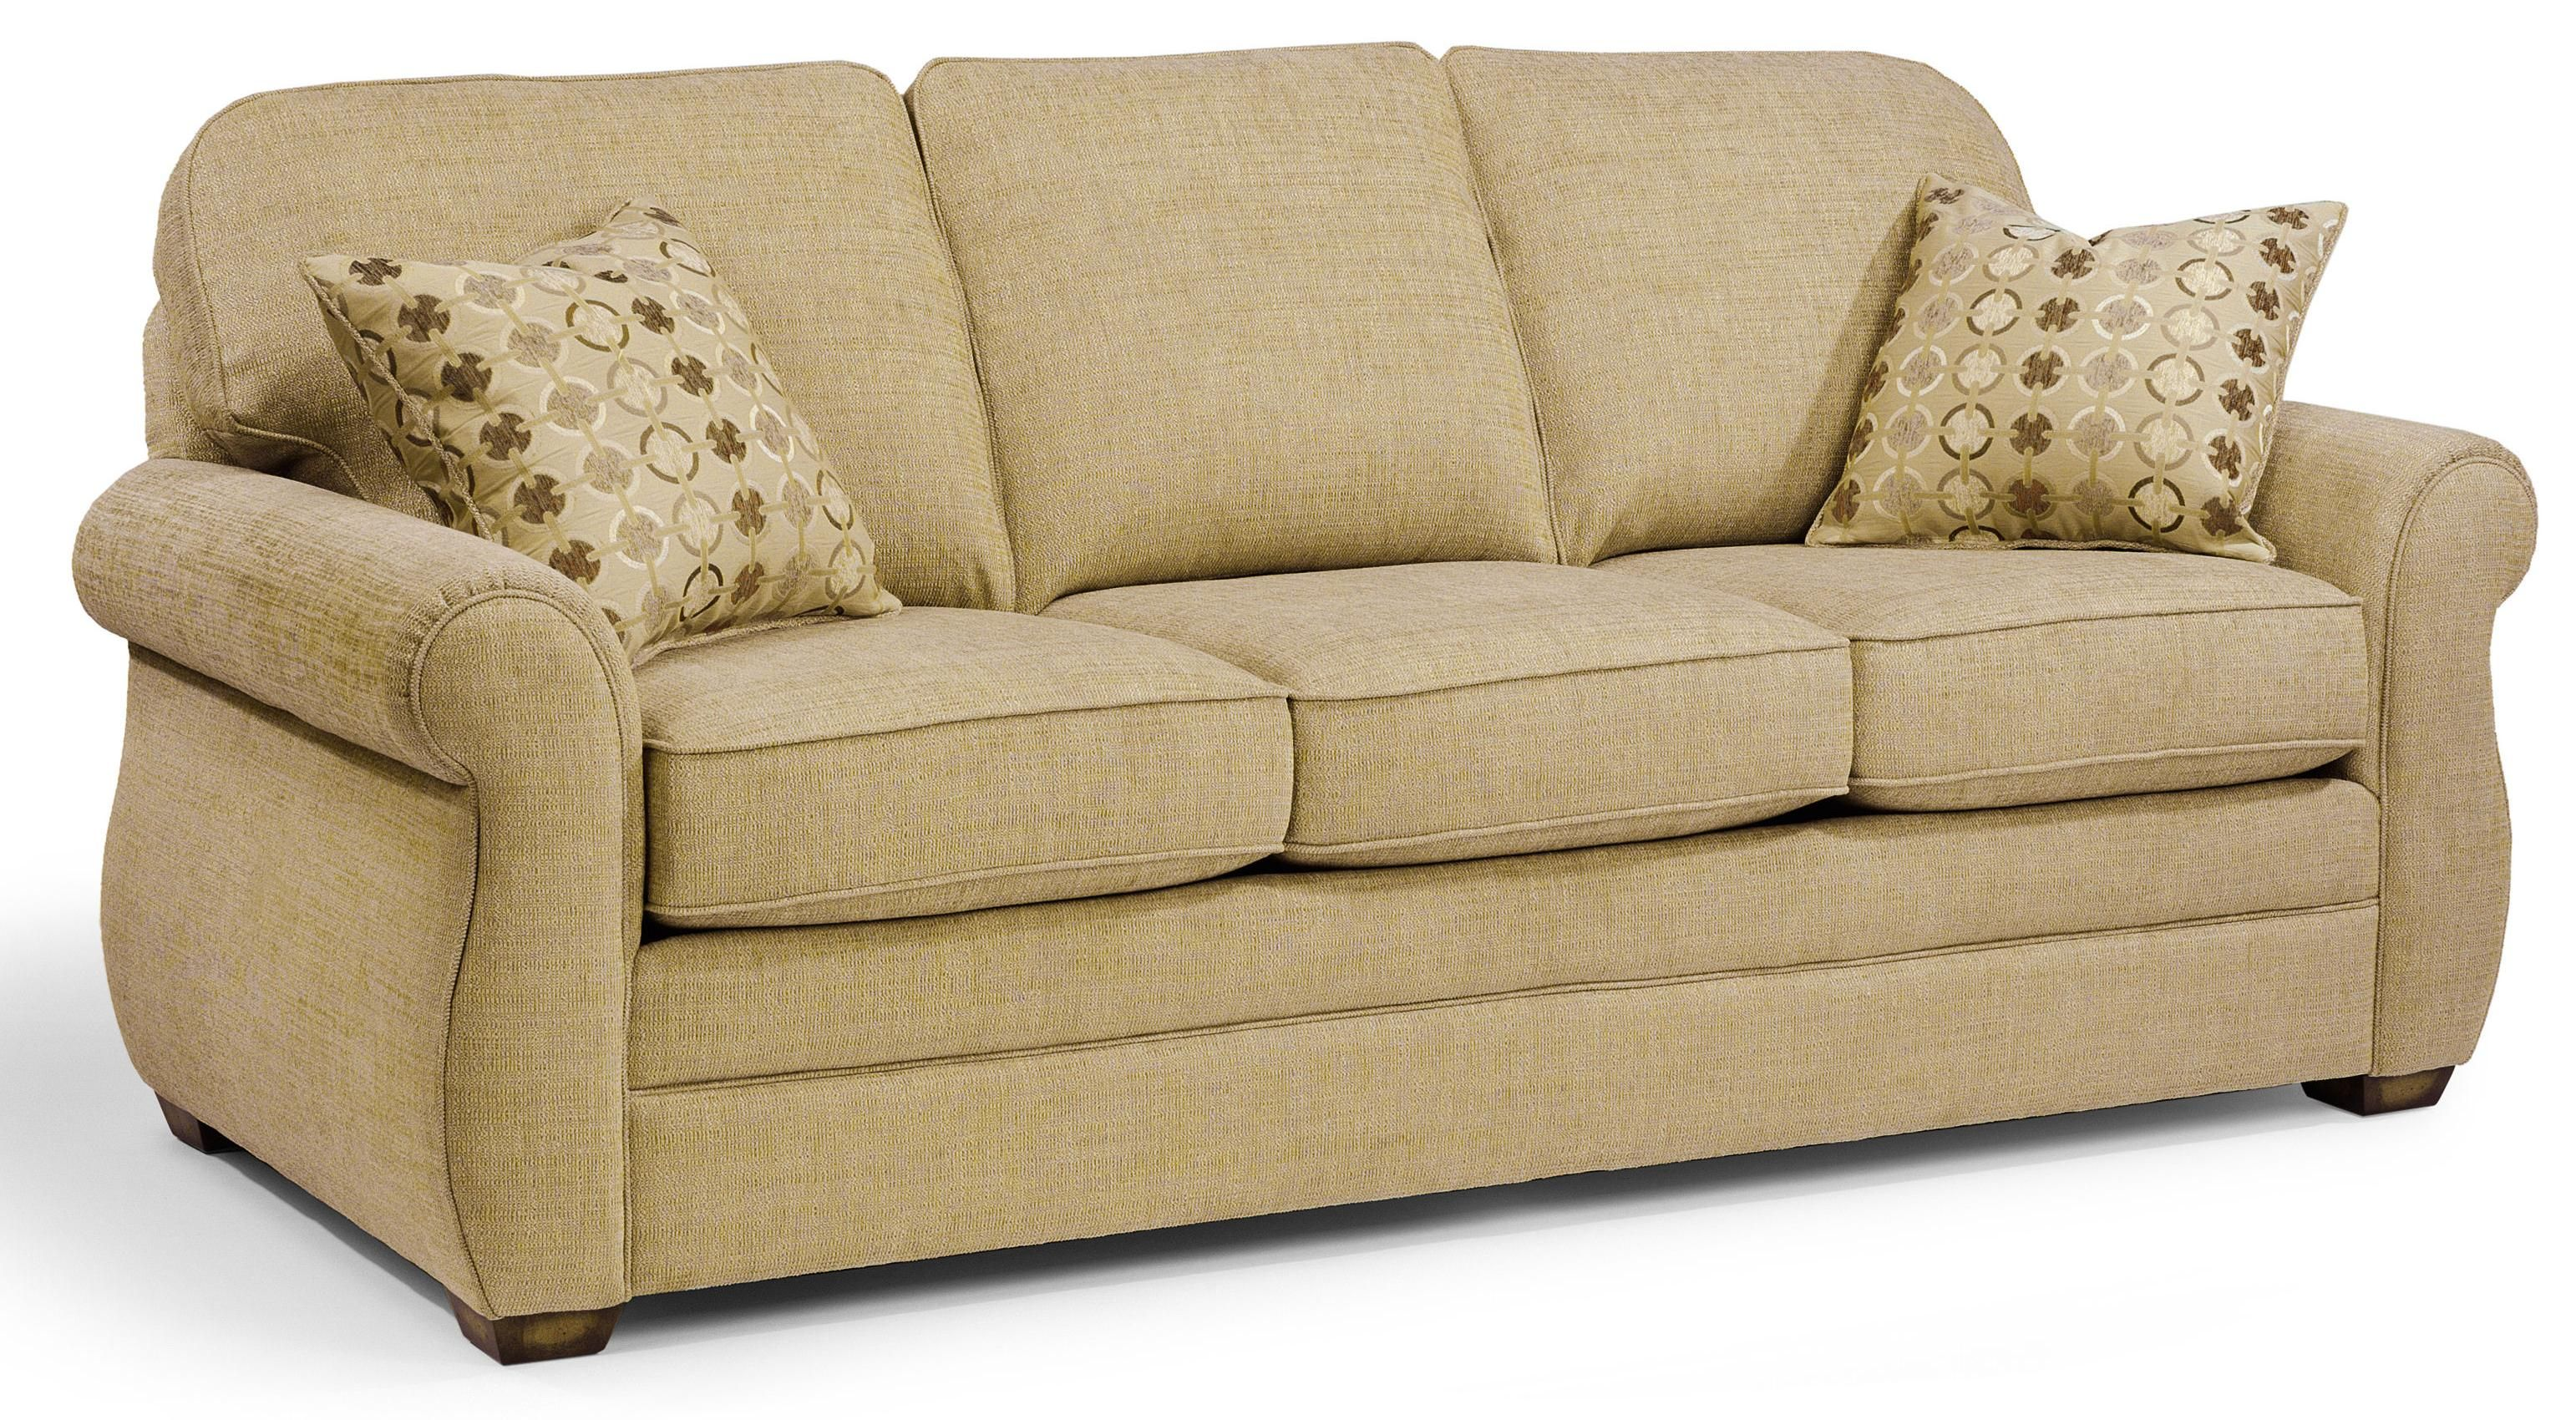 Paige Sofa S5535 31 Sofas from Flexsteel at